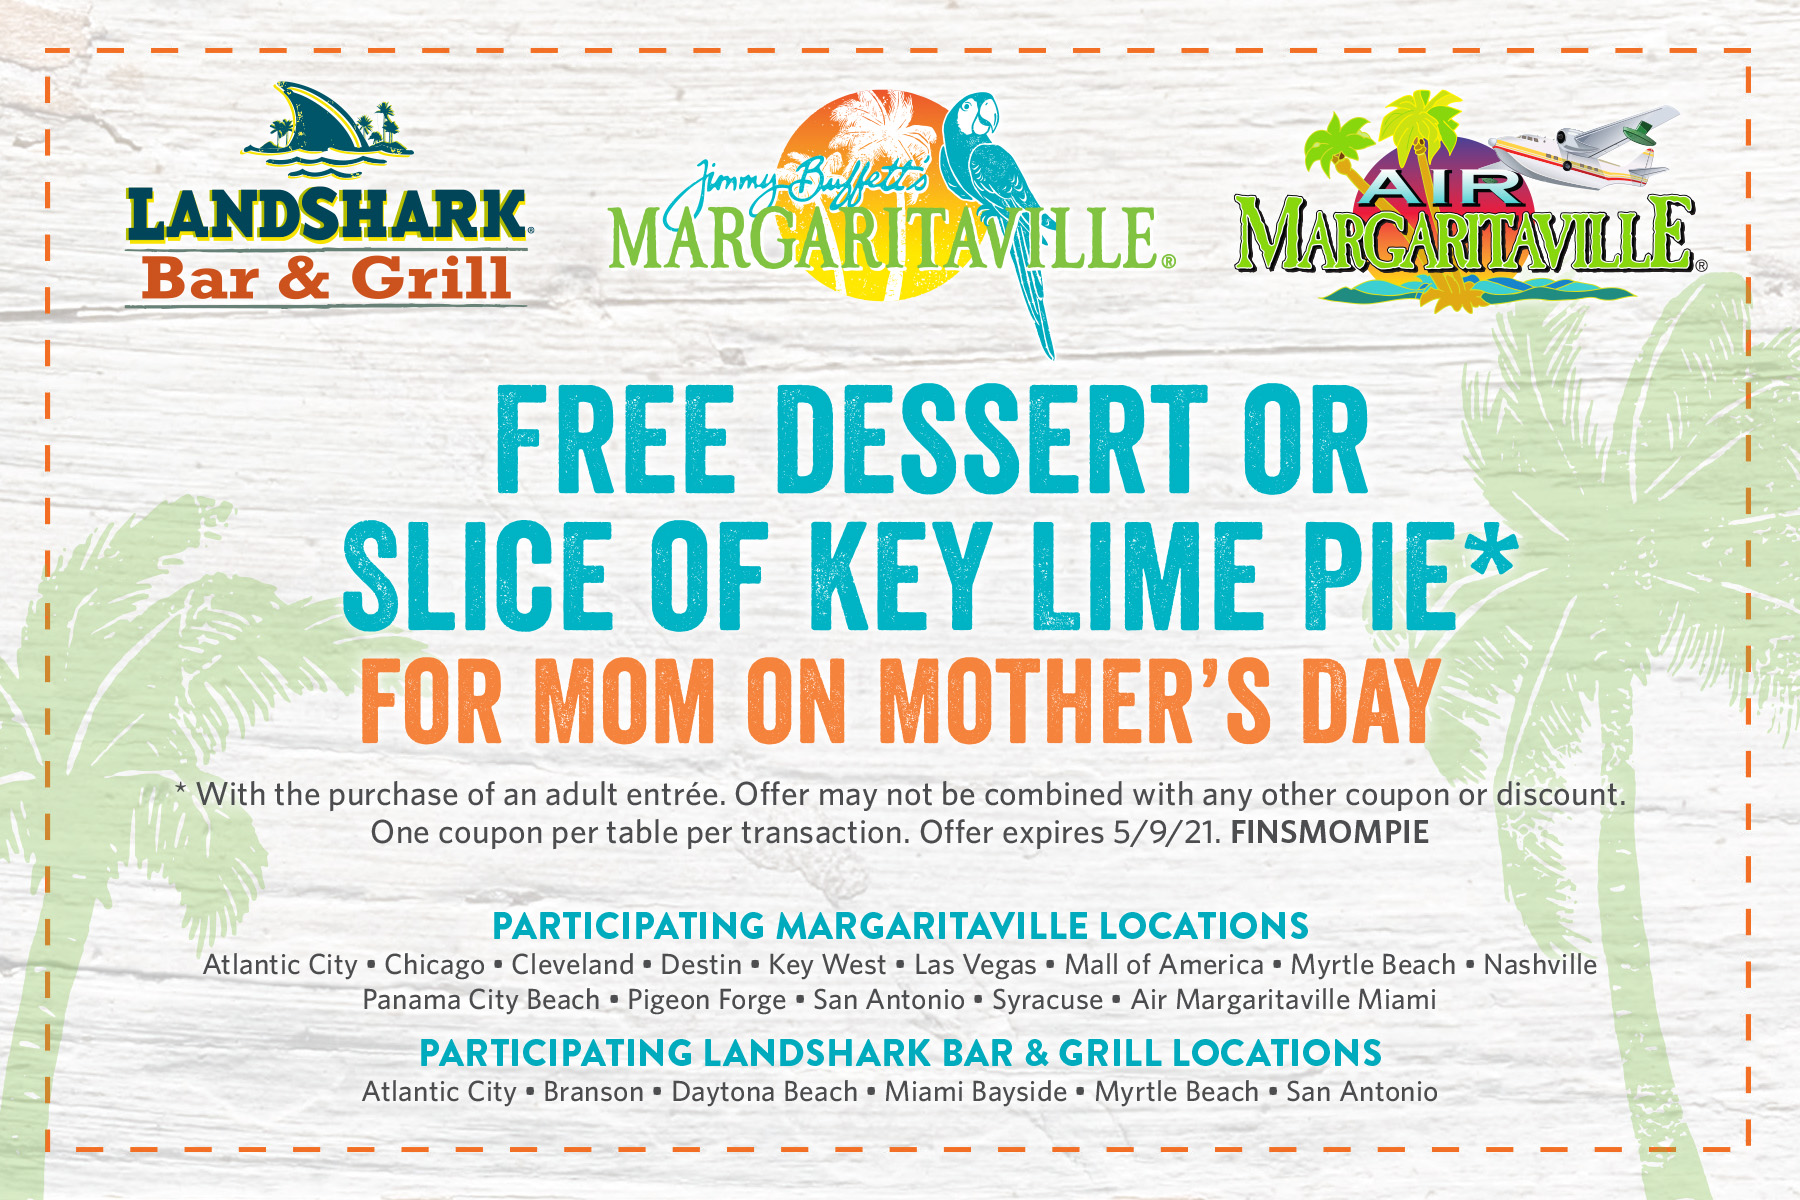 Free Dessert or Slive of Key Lime Pie for Mom on Mother's Day*